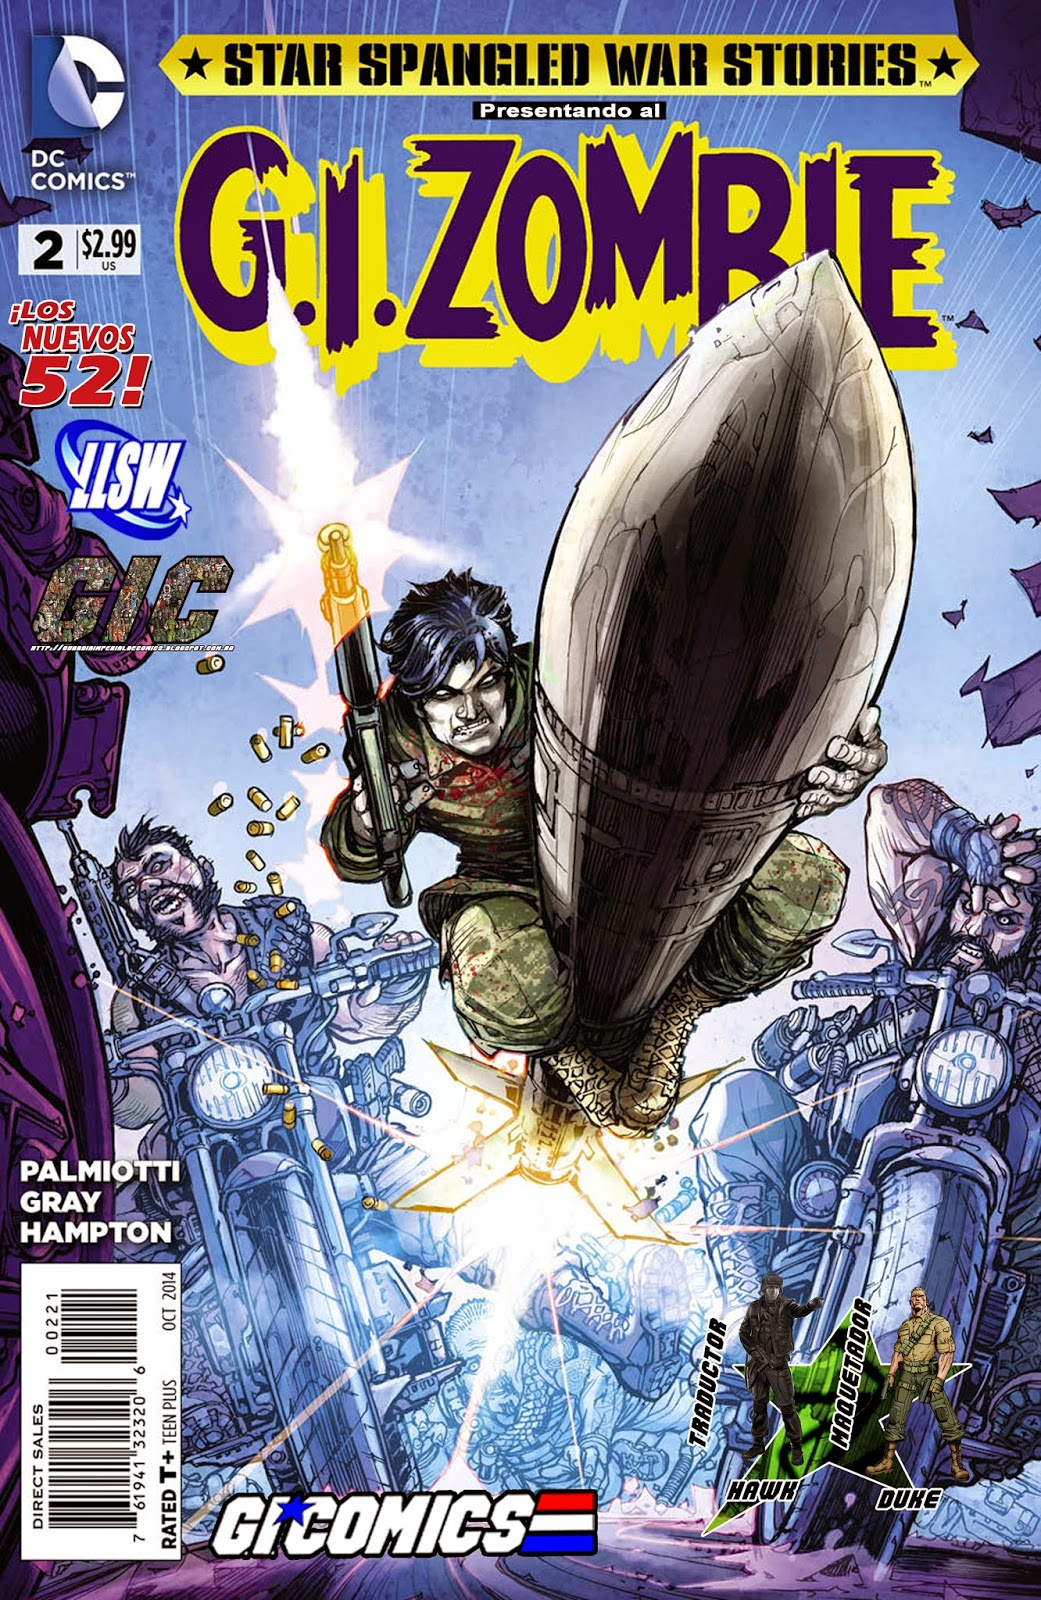 http://www.mediafire.com/download/xlzwxhbetb71s45/Star+Spangled+War+Stories+02+G.I.Comics+Hawk-Duke.cbr